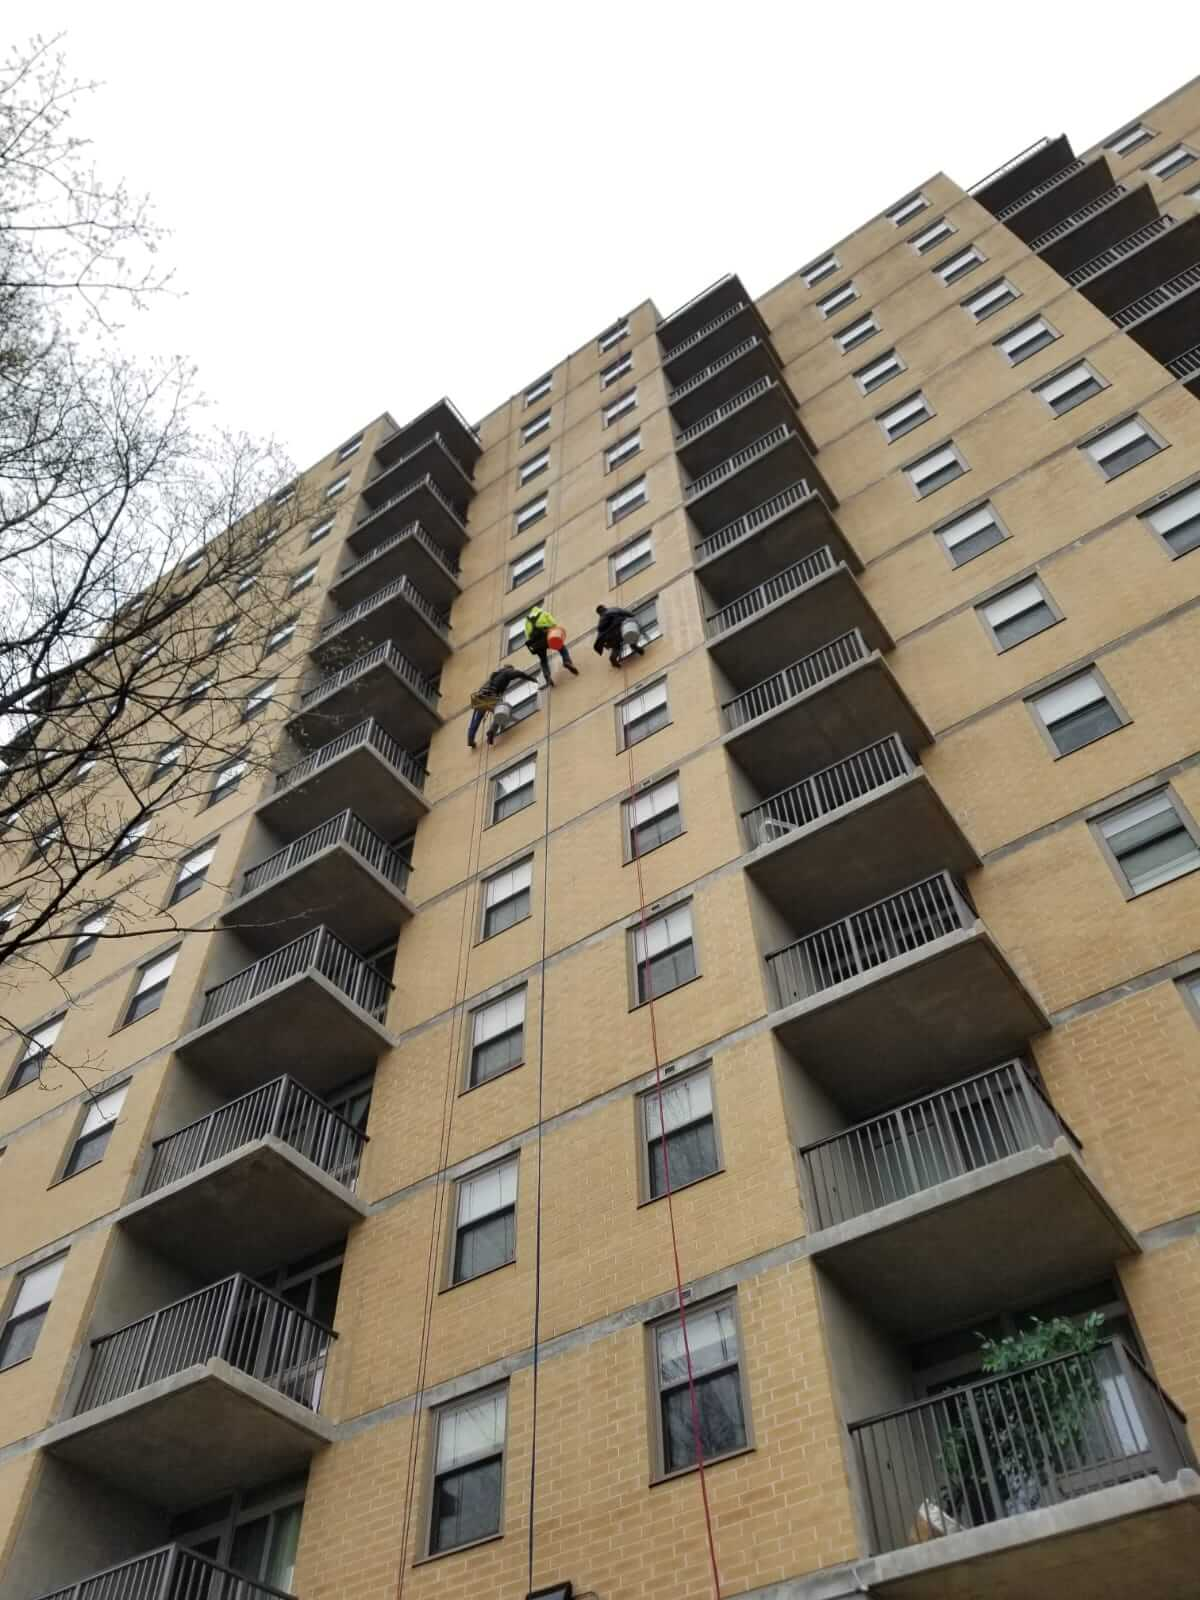 Presto waterproofing technicians rappelling off of B'nai B'rith Apartments, Allentown, PA